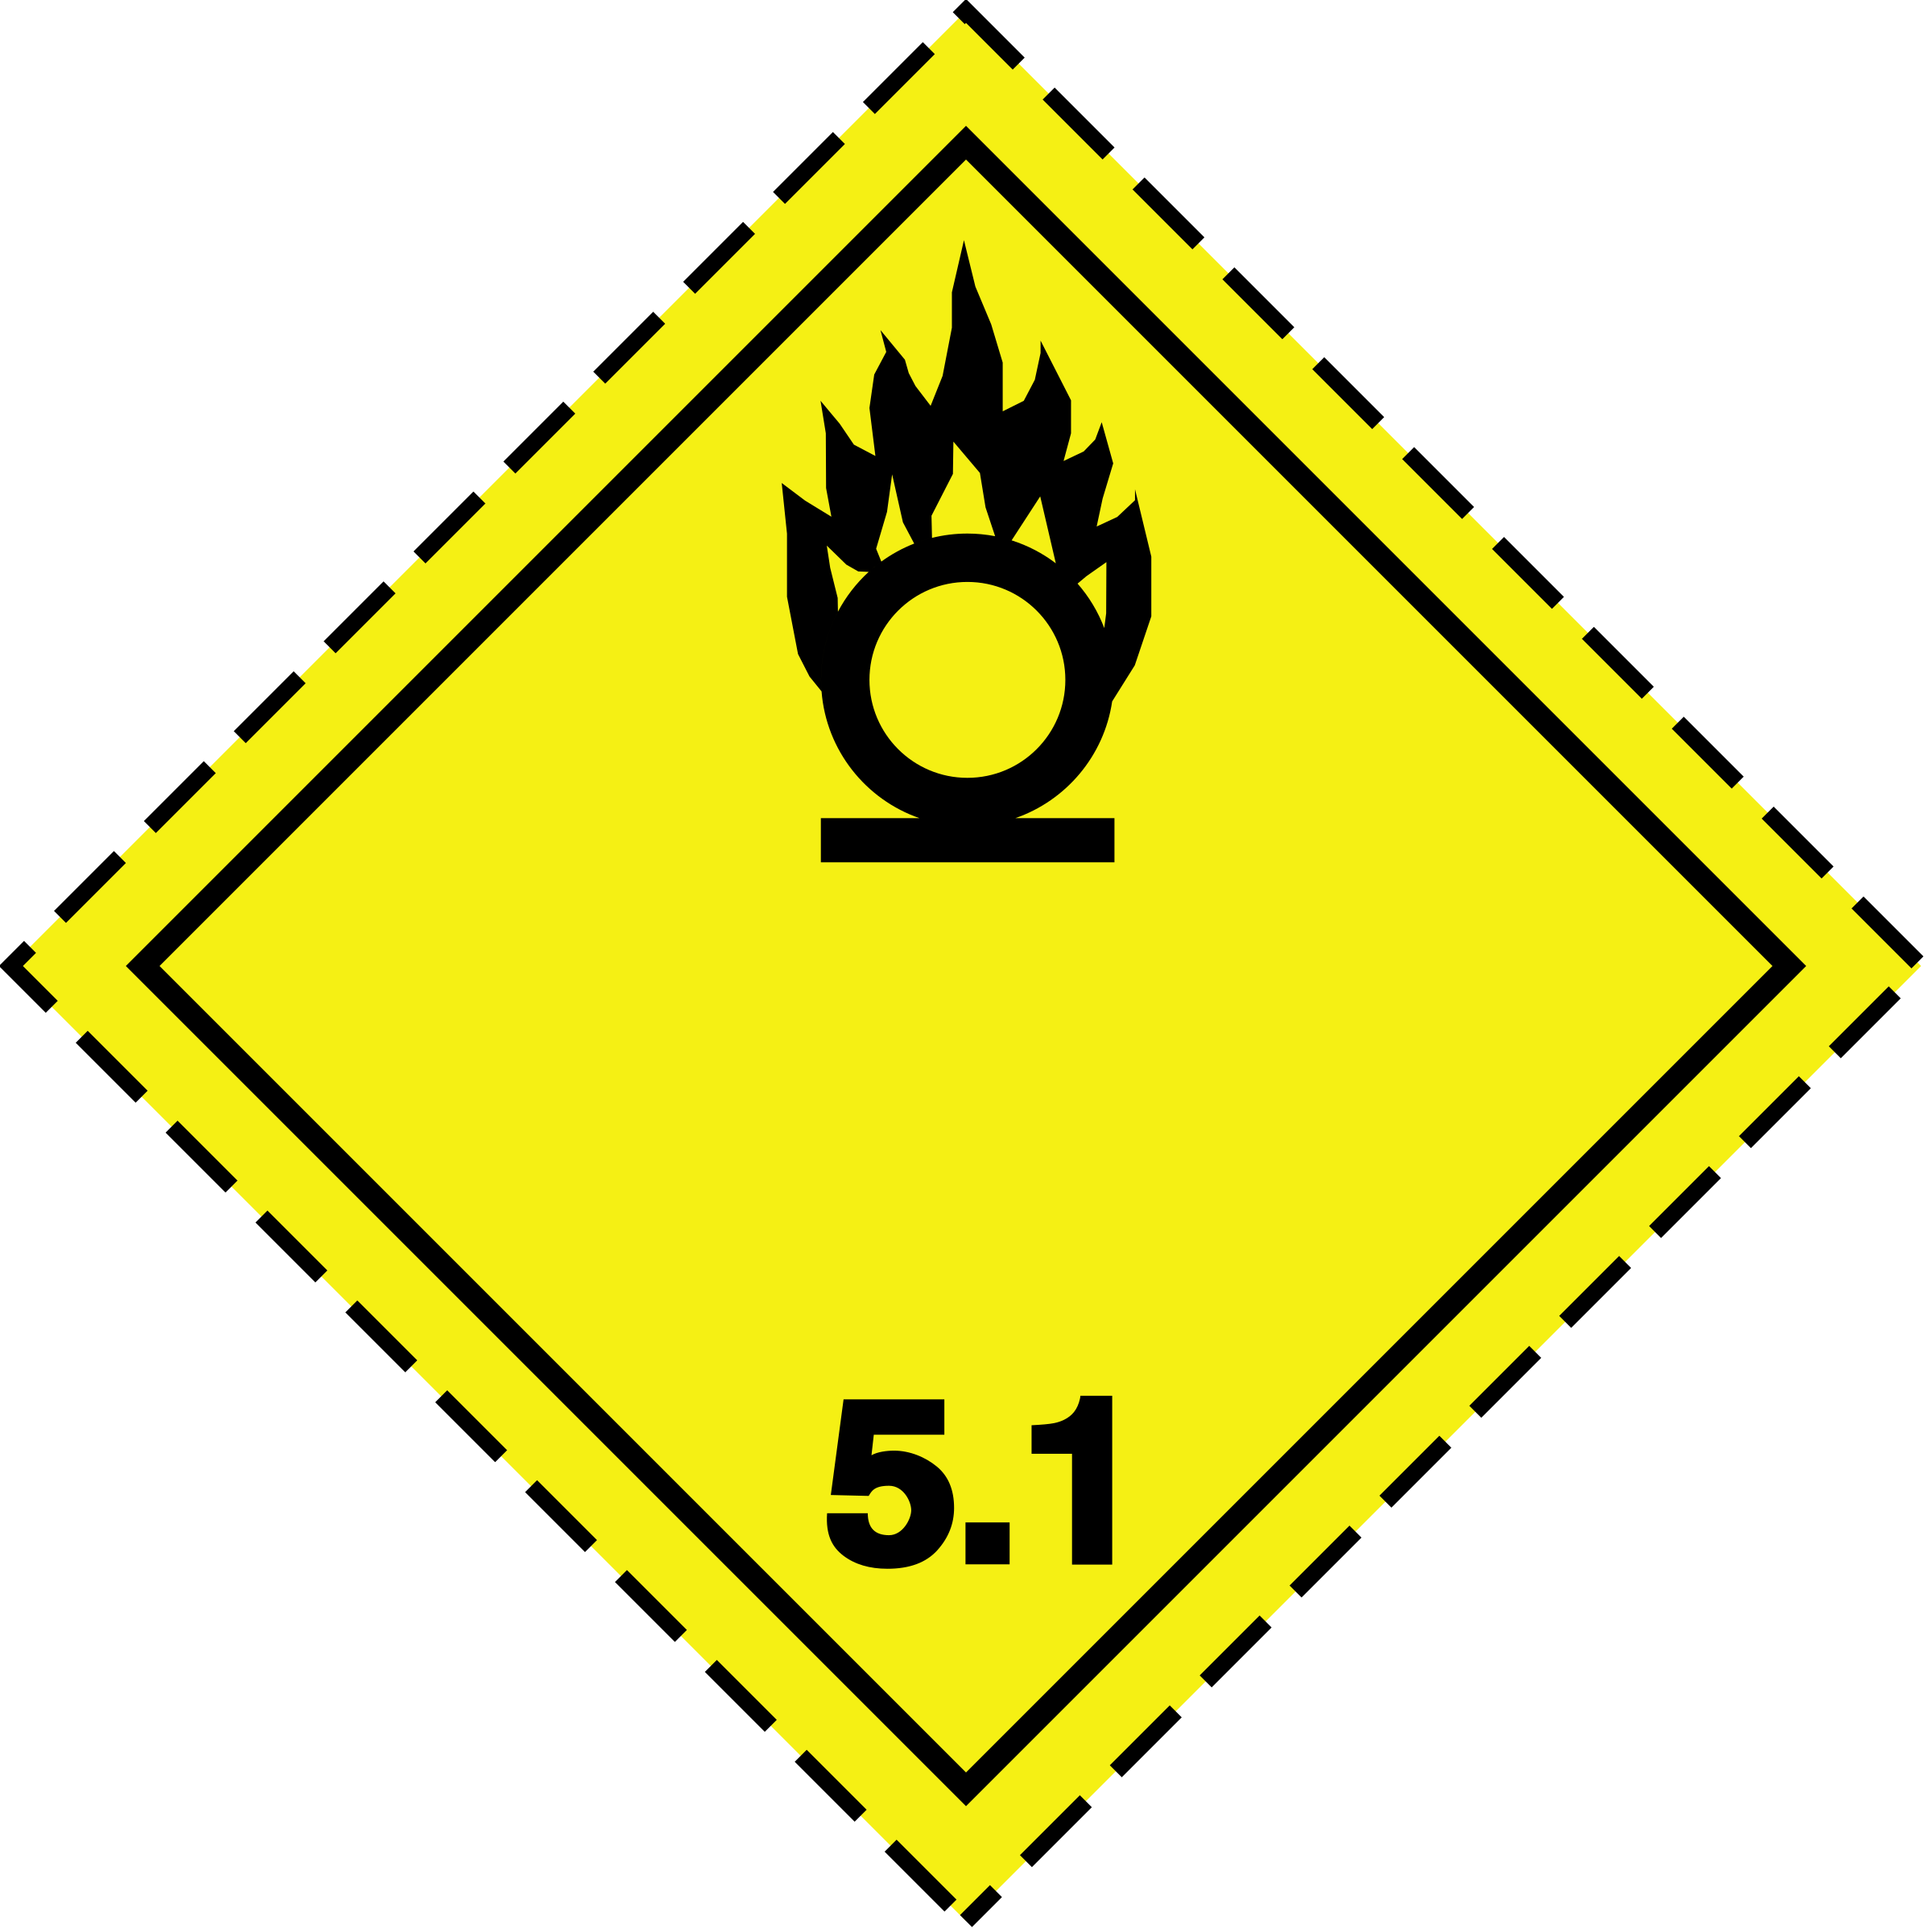 ADR pictogram 5.1-Oxidizers by Juhele